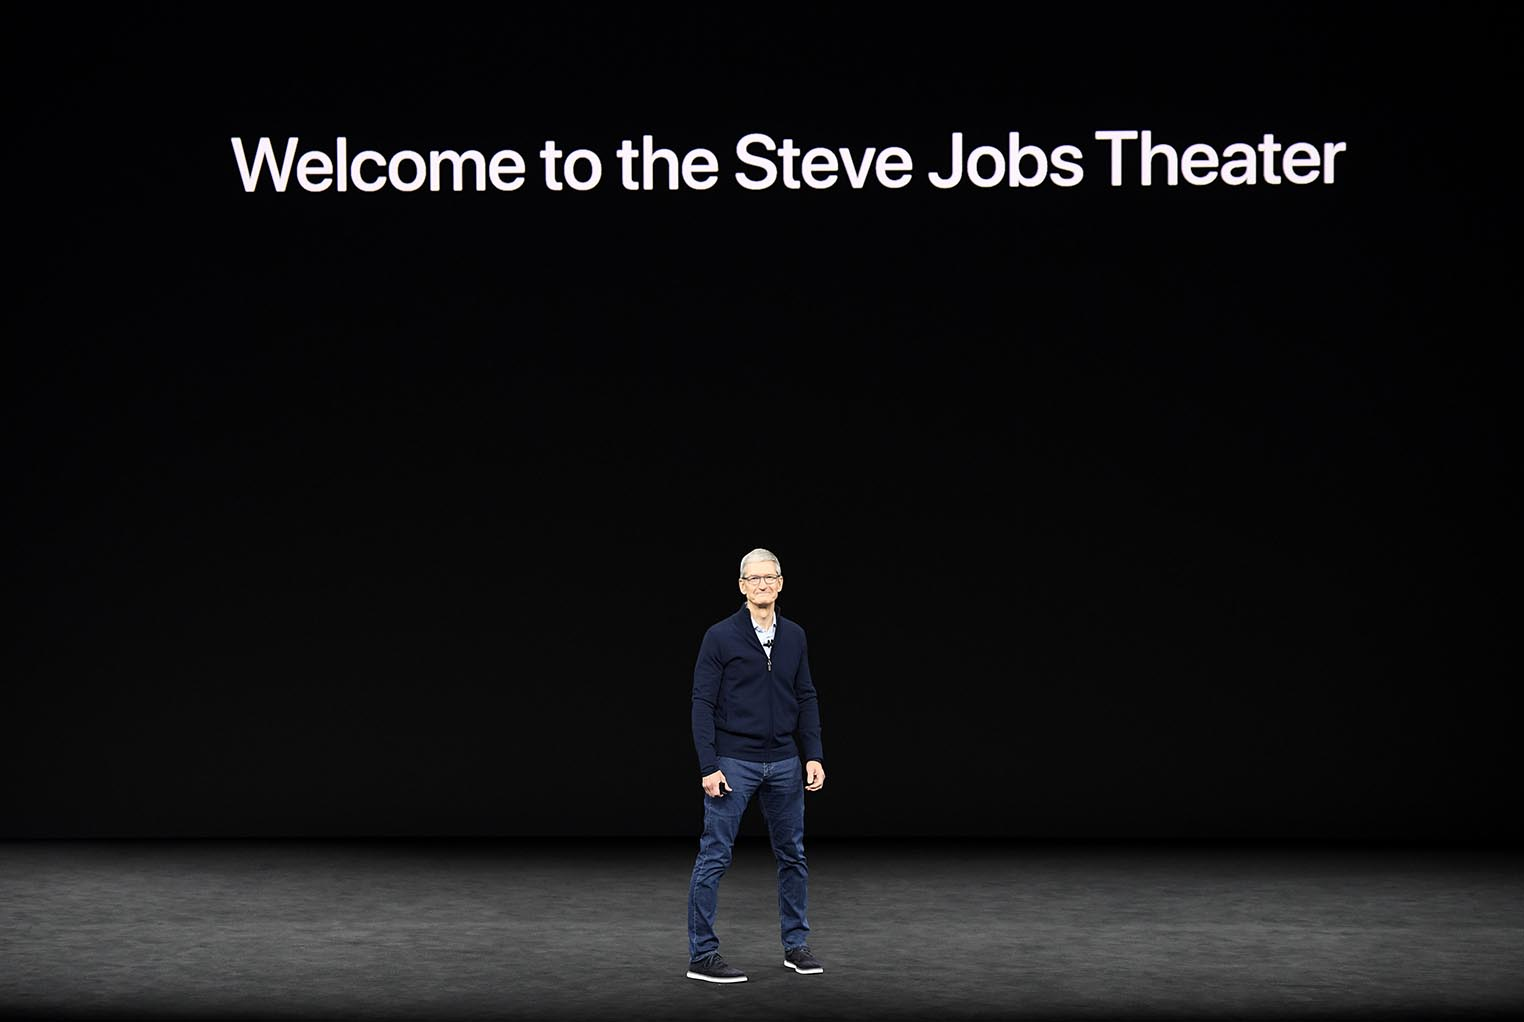 Welcome to the Steve Jobs Theater